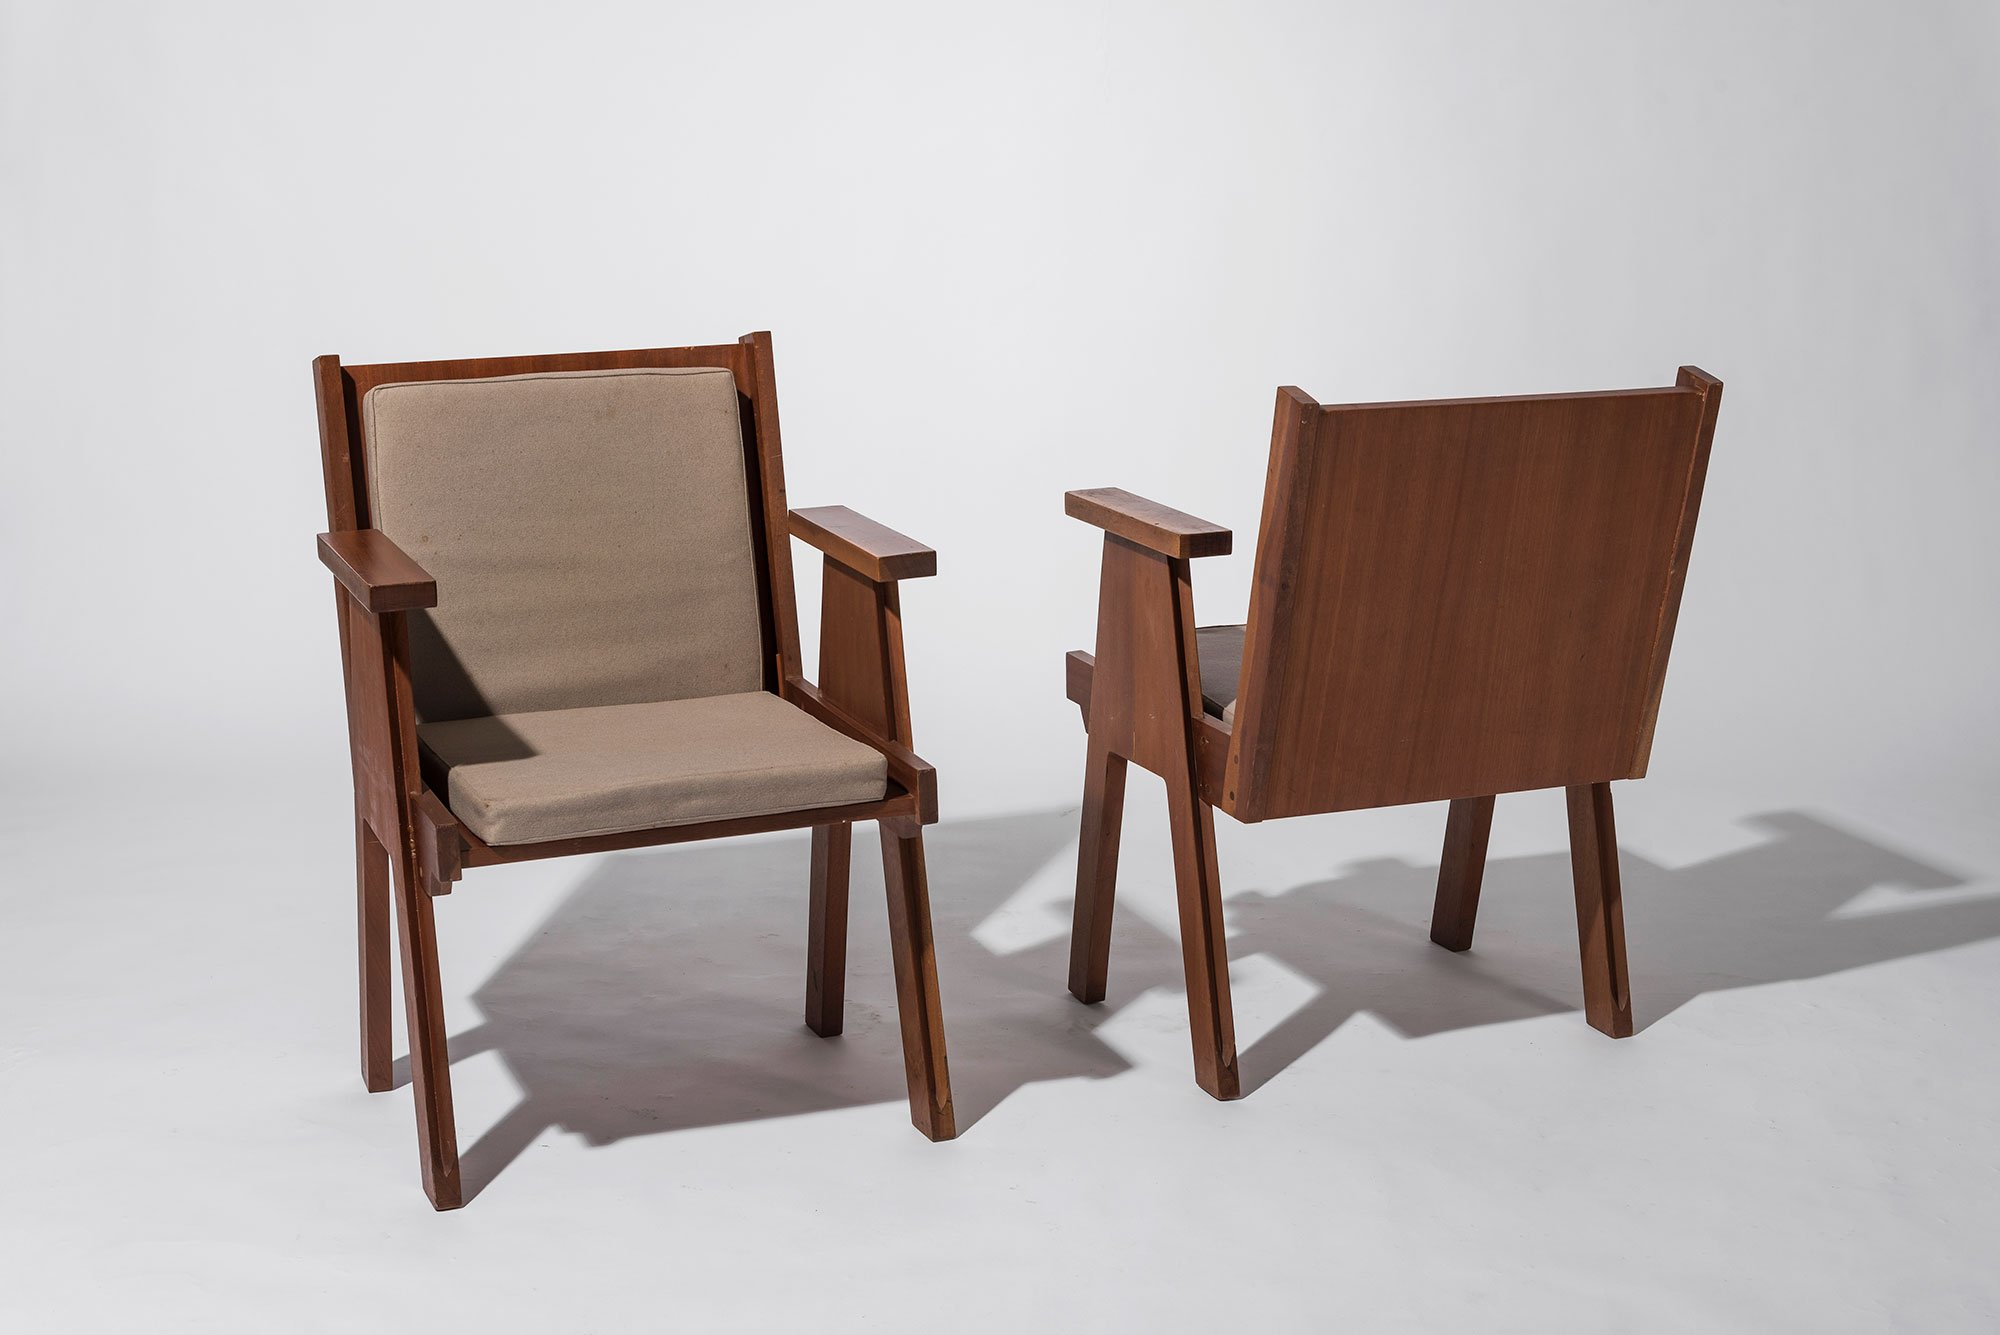 Angelo Mangiarotti |                              Pair of chairs from Club 44 at La Chaux-de-Fonds, Switzerland